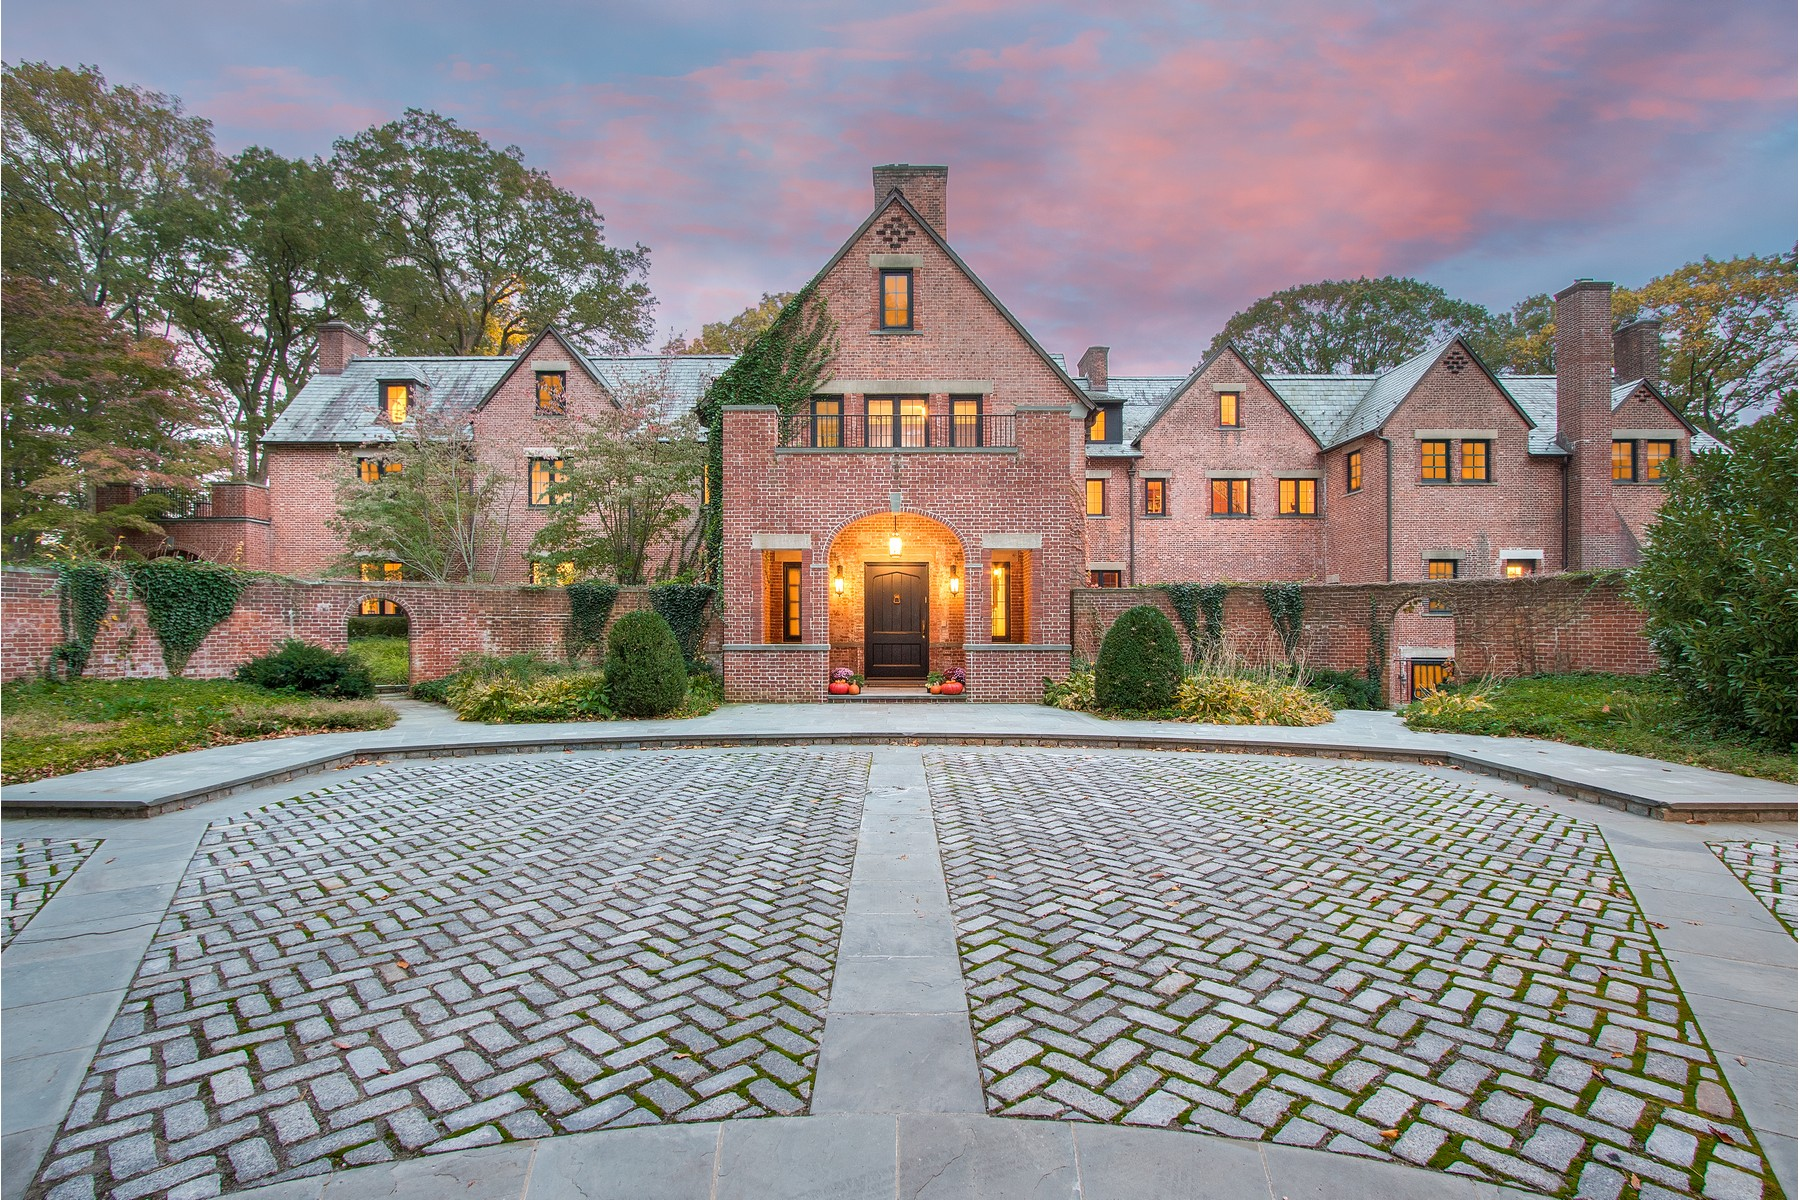 Single Family Homes for Active at Old Westbury 53 Bacon Road Old Westbury, New York 11568 United States